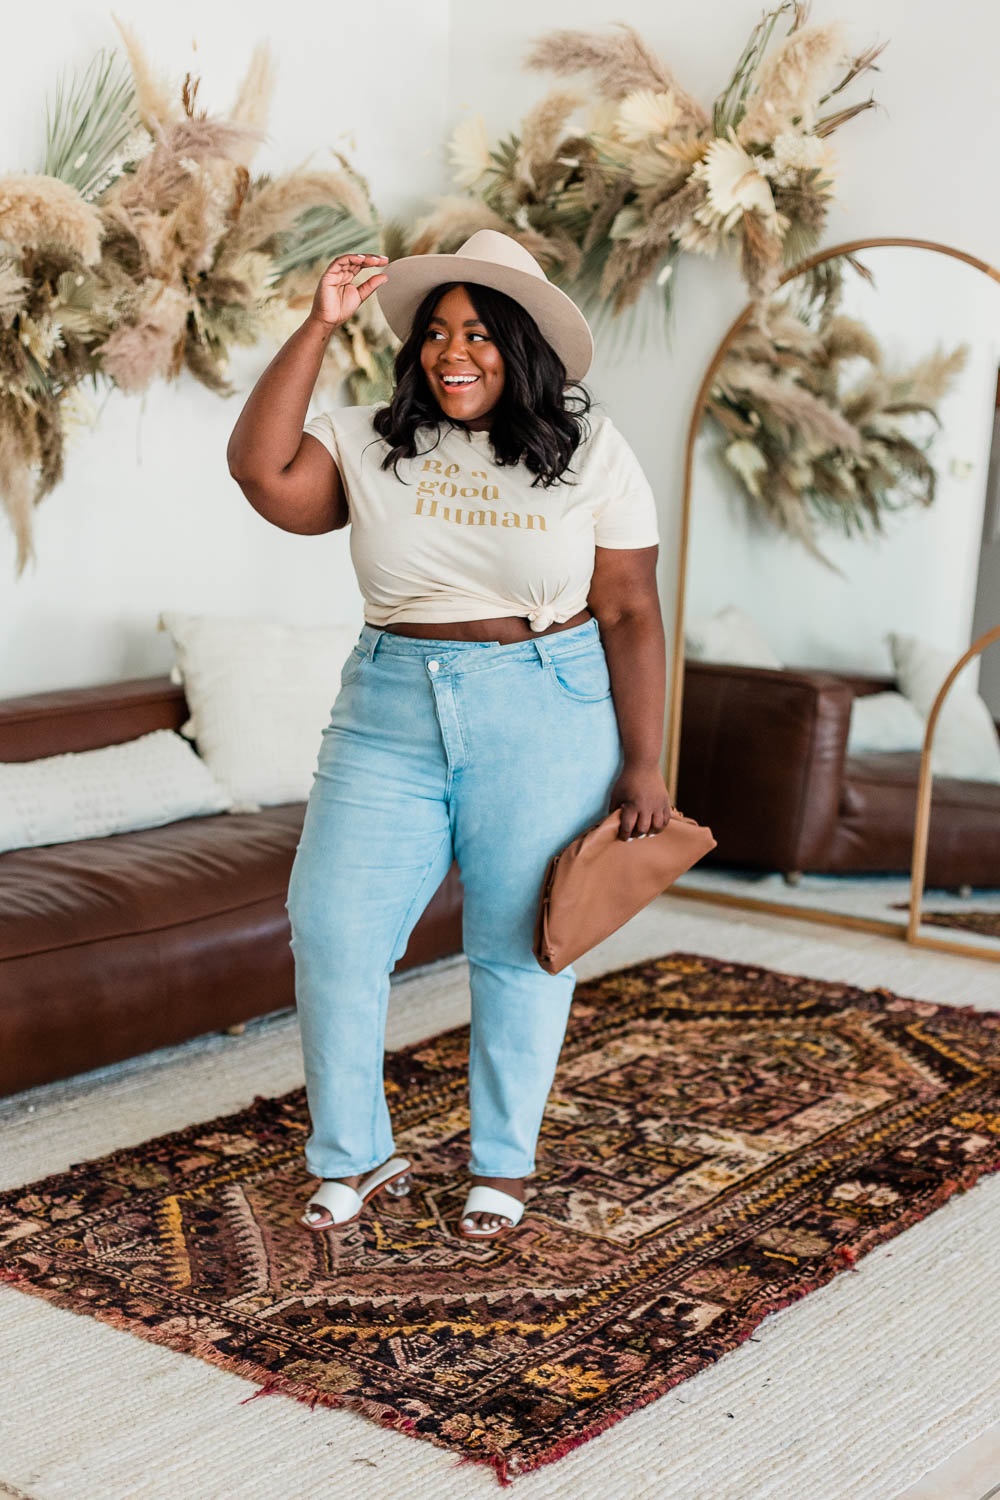 Dried Flower Installation, Urban Outfitters Tabitha Arc Mirror, Forever 21 Plus Size Knit Bodysuit Tan, Forever 21 Plus Size Straight Leg Jean, Lack of Color Benson Tri-Beige, Dumplin Bag, Organic Cotton Graphic Tee Forever 21 Plus Size Be a Good Human